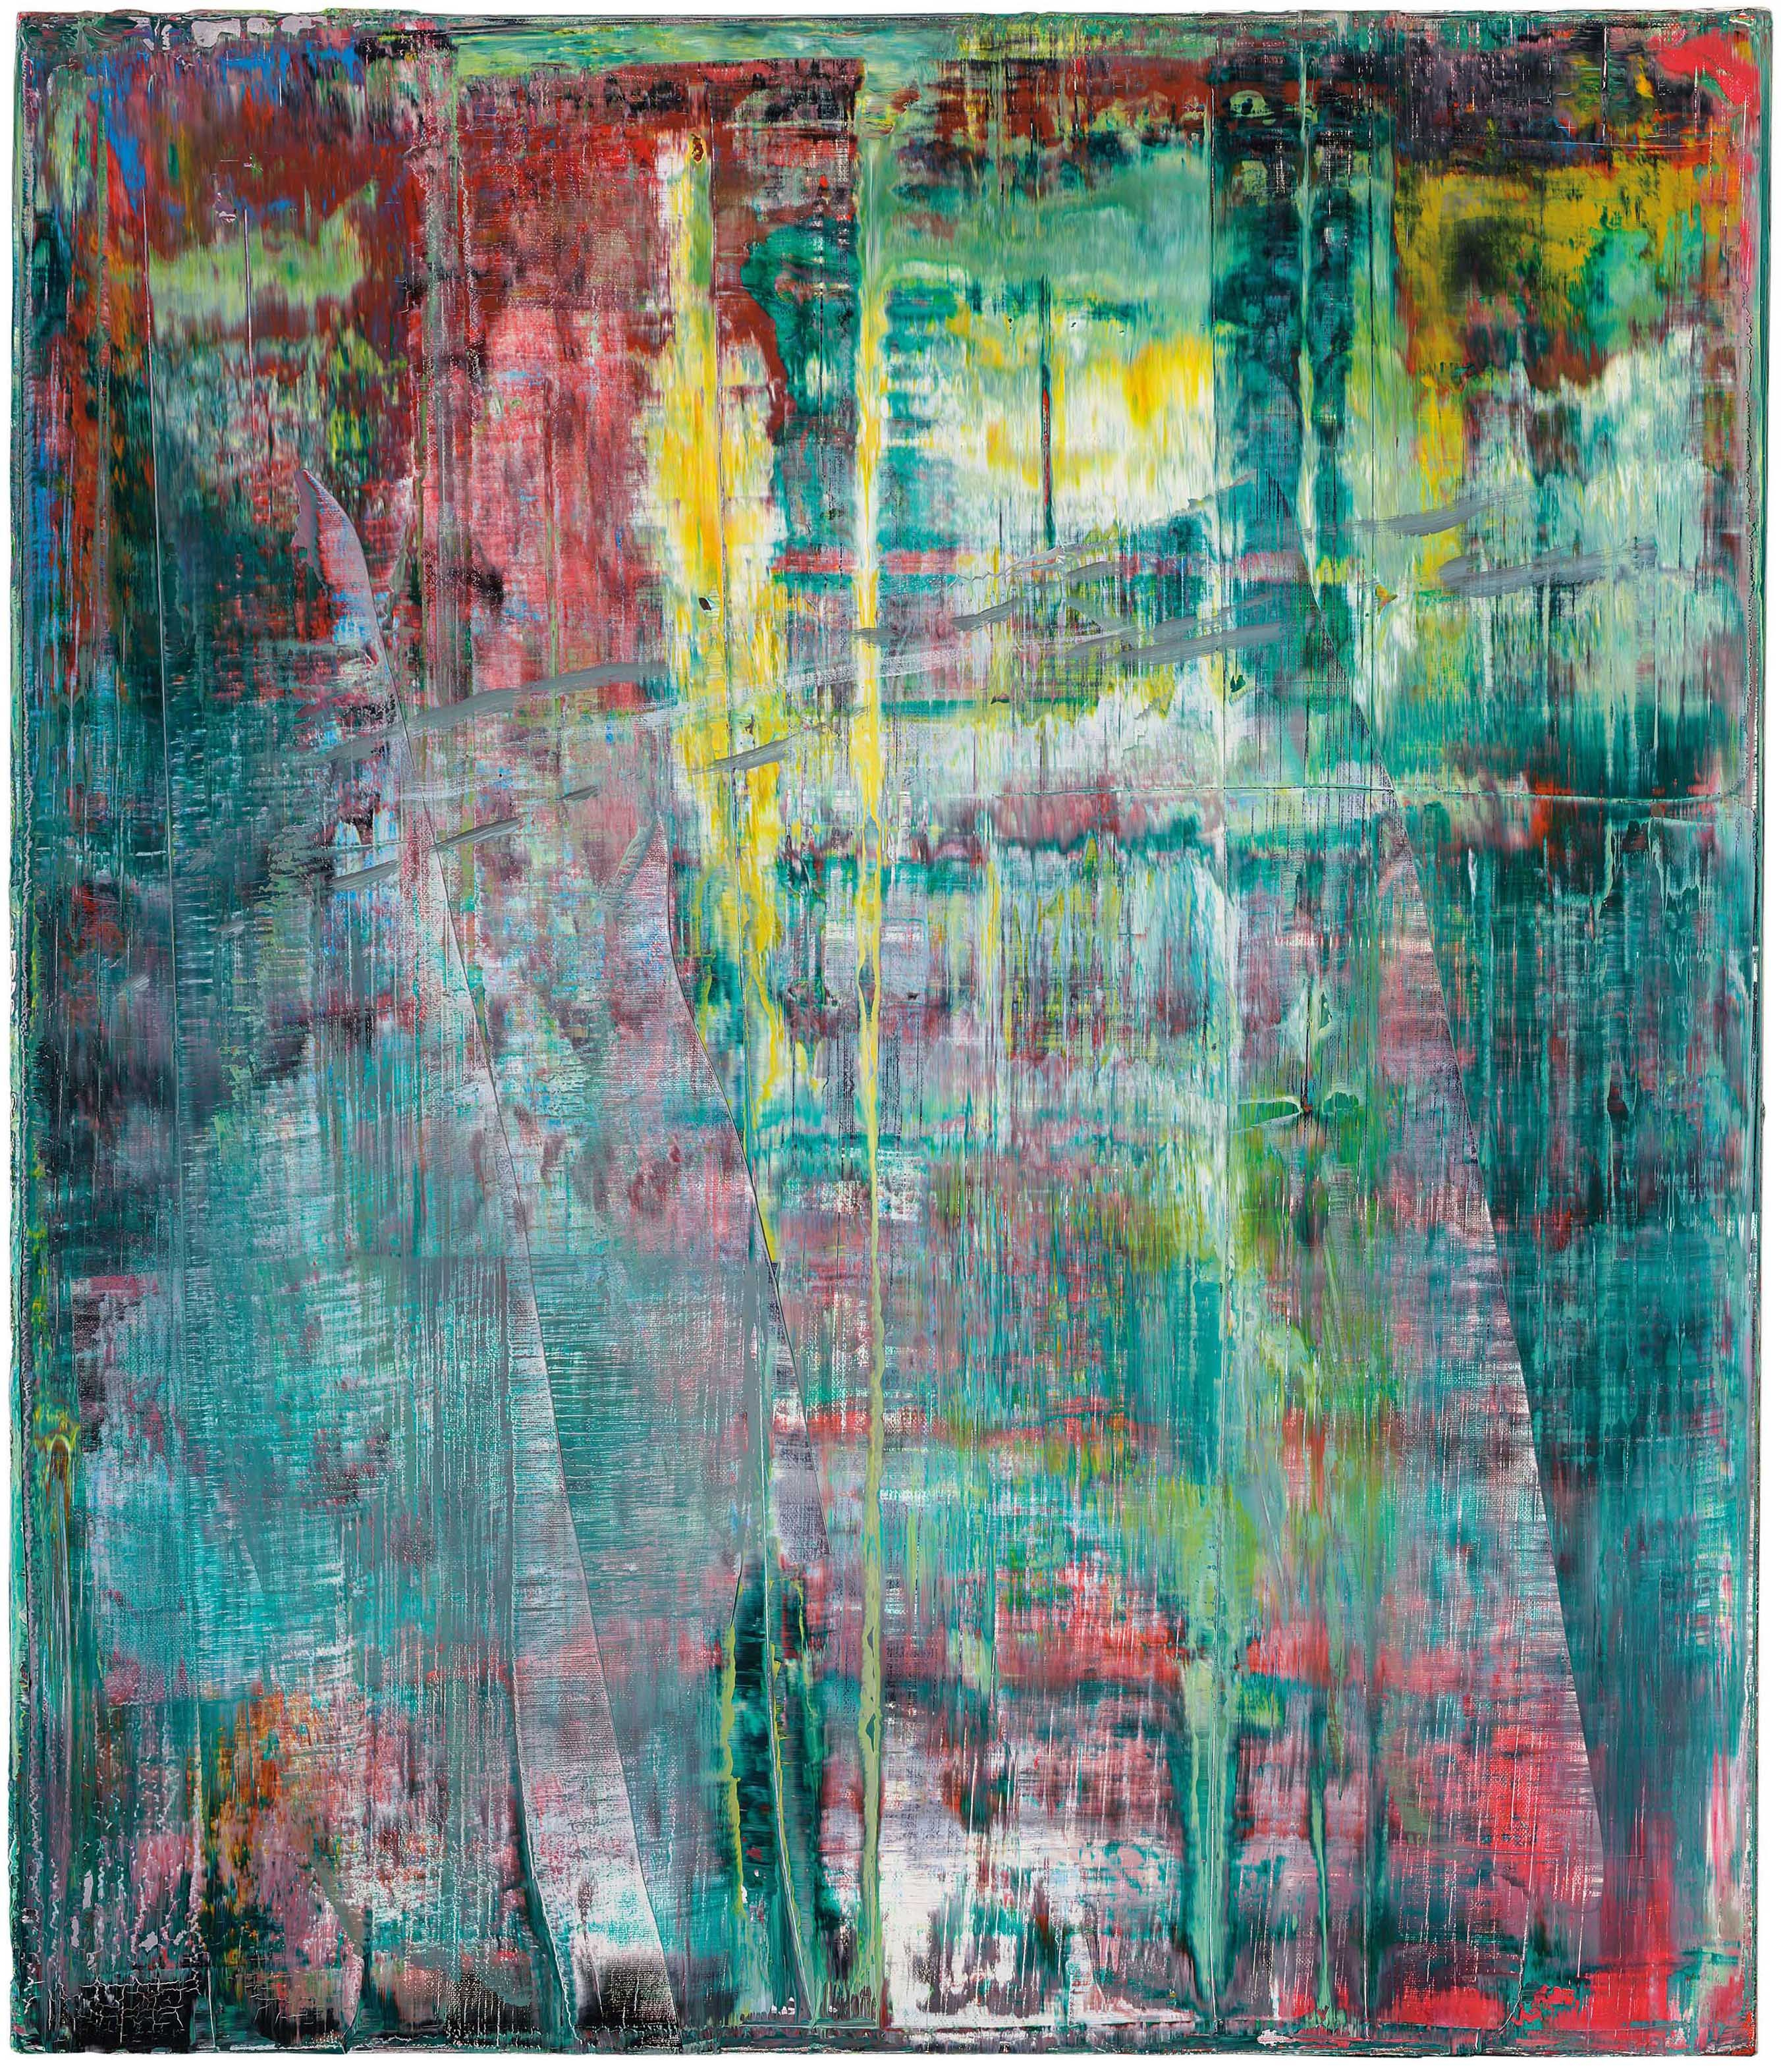 Gerhard Richter Germany B 1932 Abstraktes Bild 1990s Paintings Christie S Gerhard Richter Art Gerhard Richter Painting